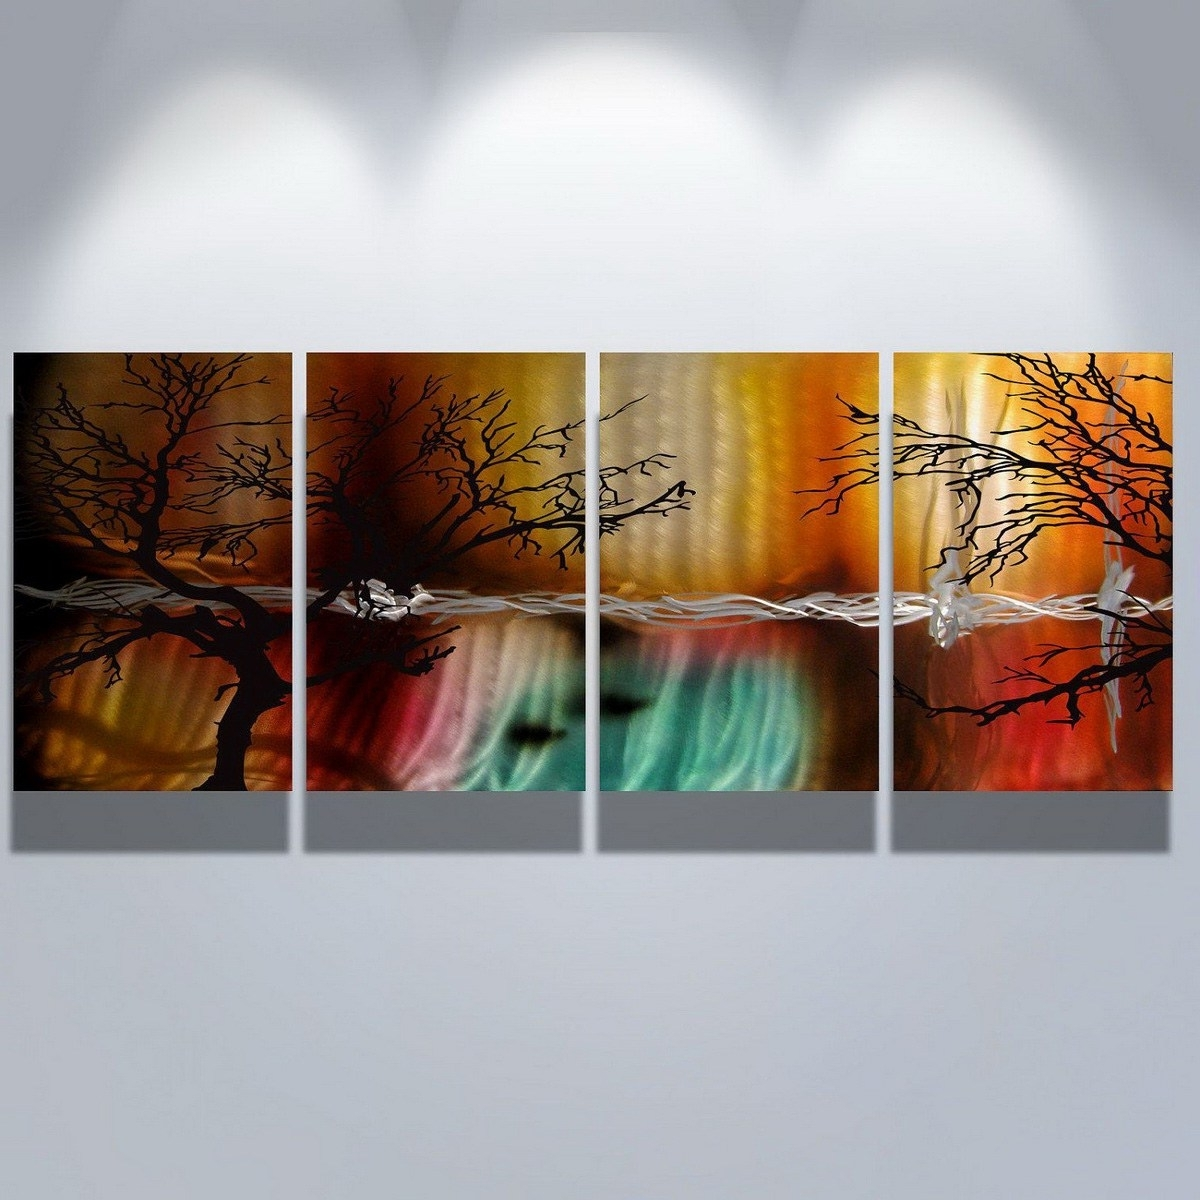 Affordable Wall Art Intended For Recent Affordable Wall Art – Elitflat (Gallery 8 of 20)